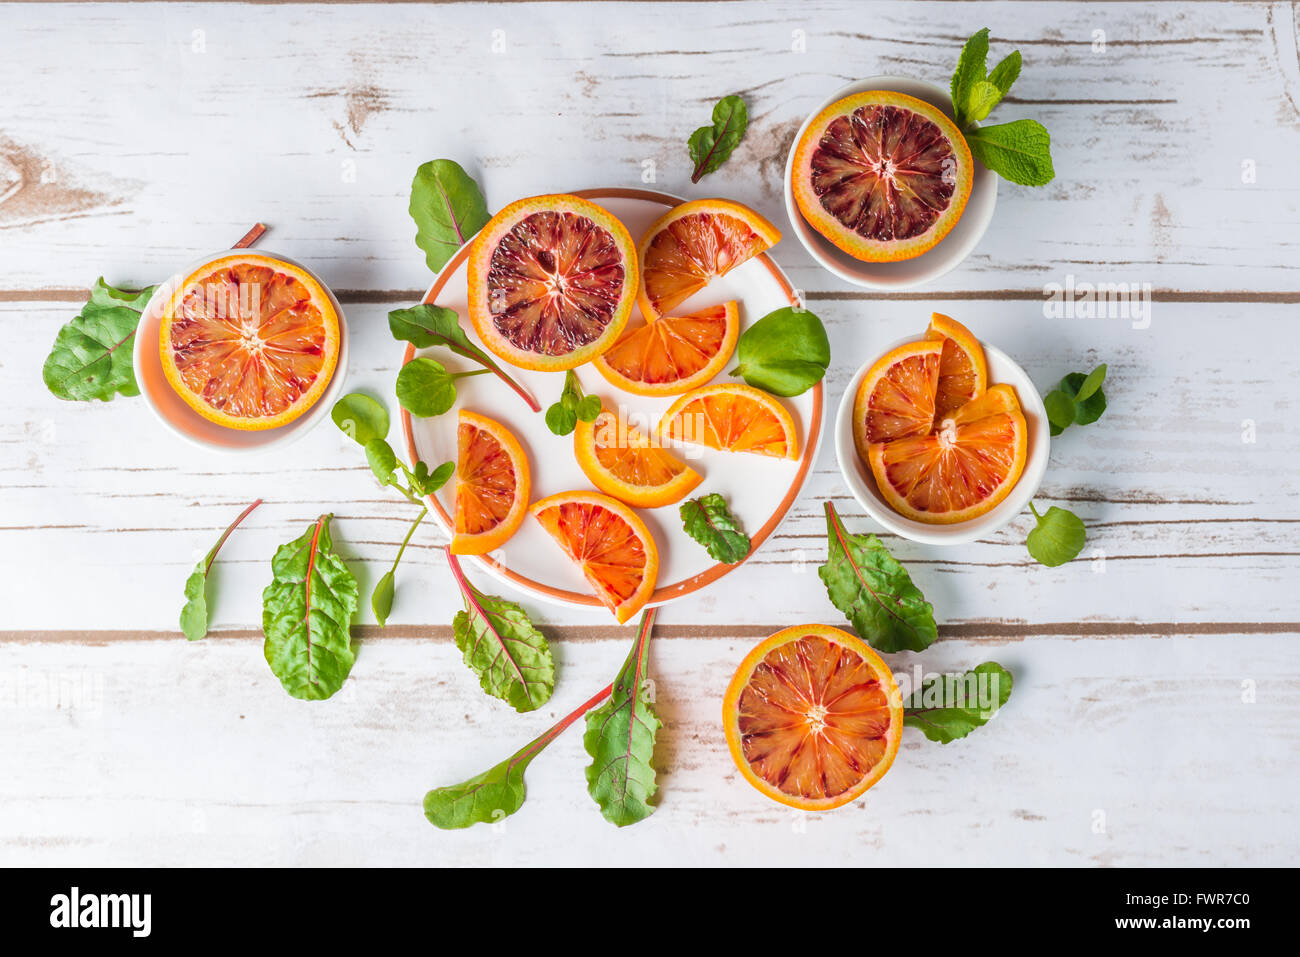 Blood oranges on white plates with green salad leaves on white wood, top view - Stock Image